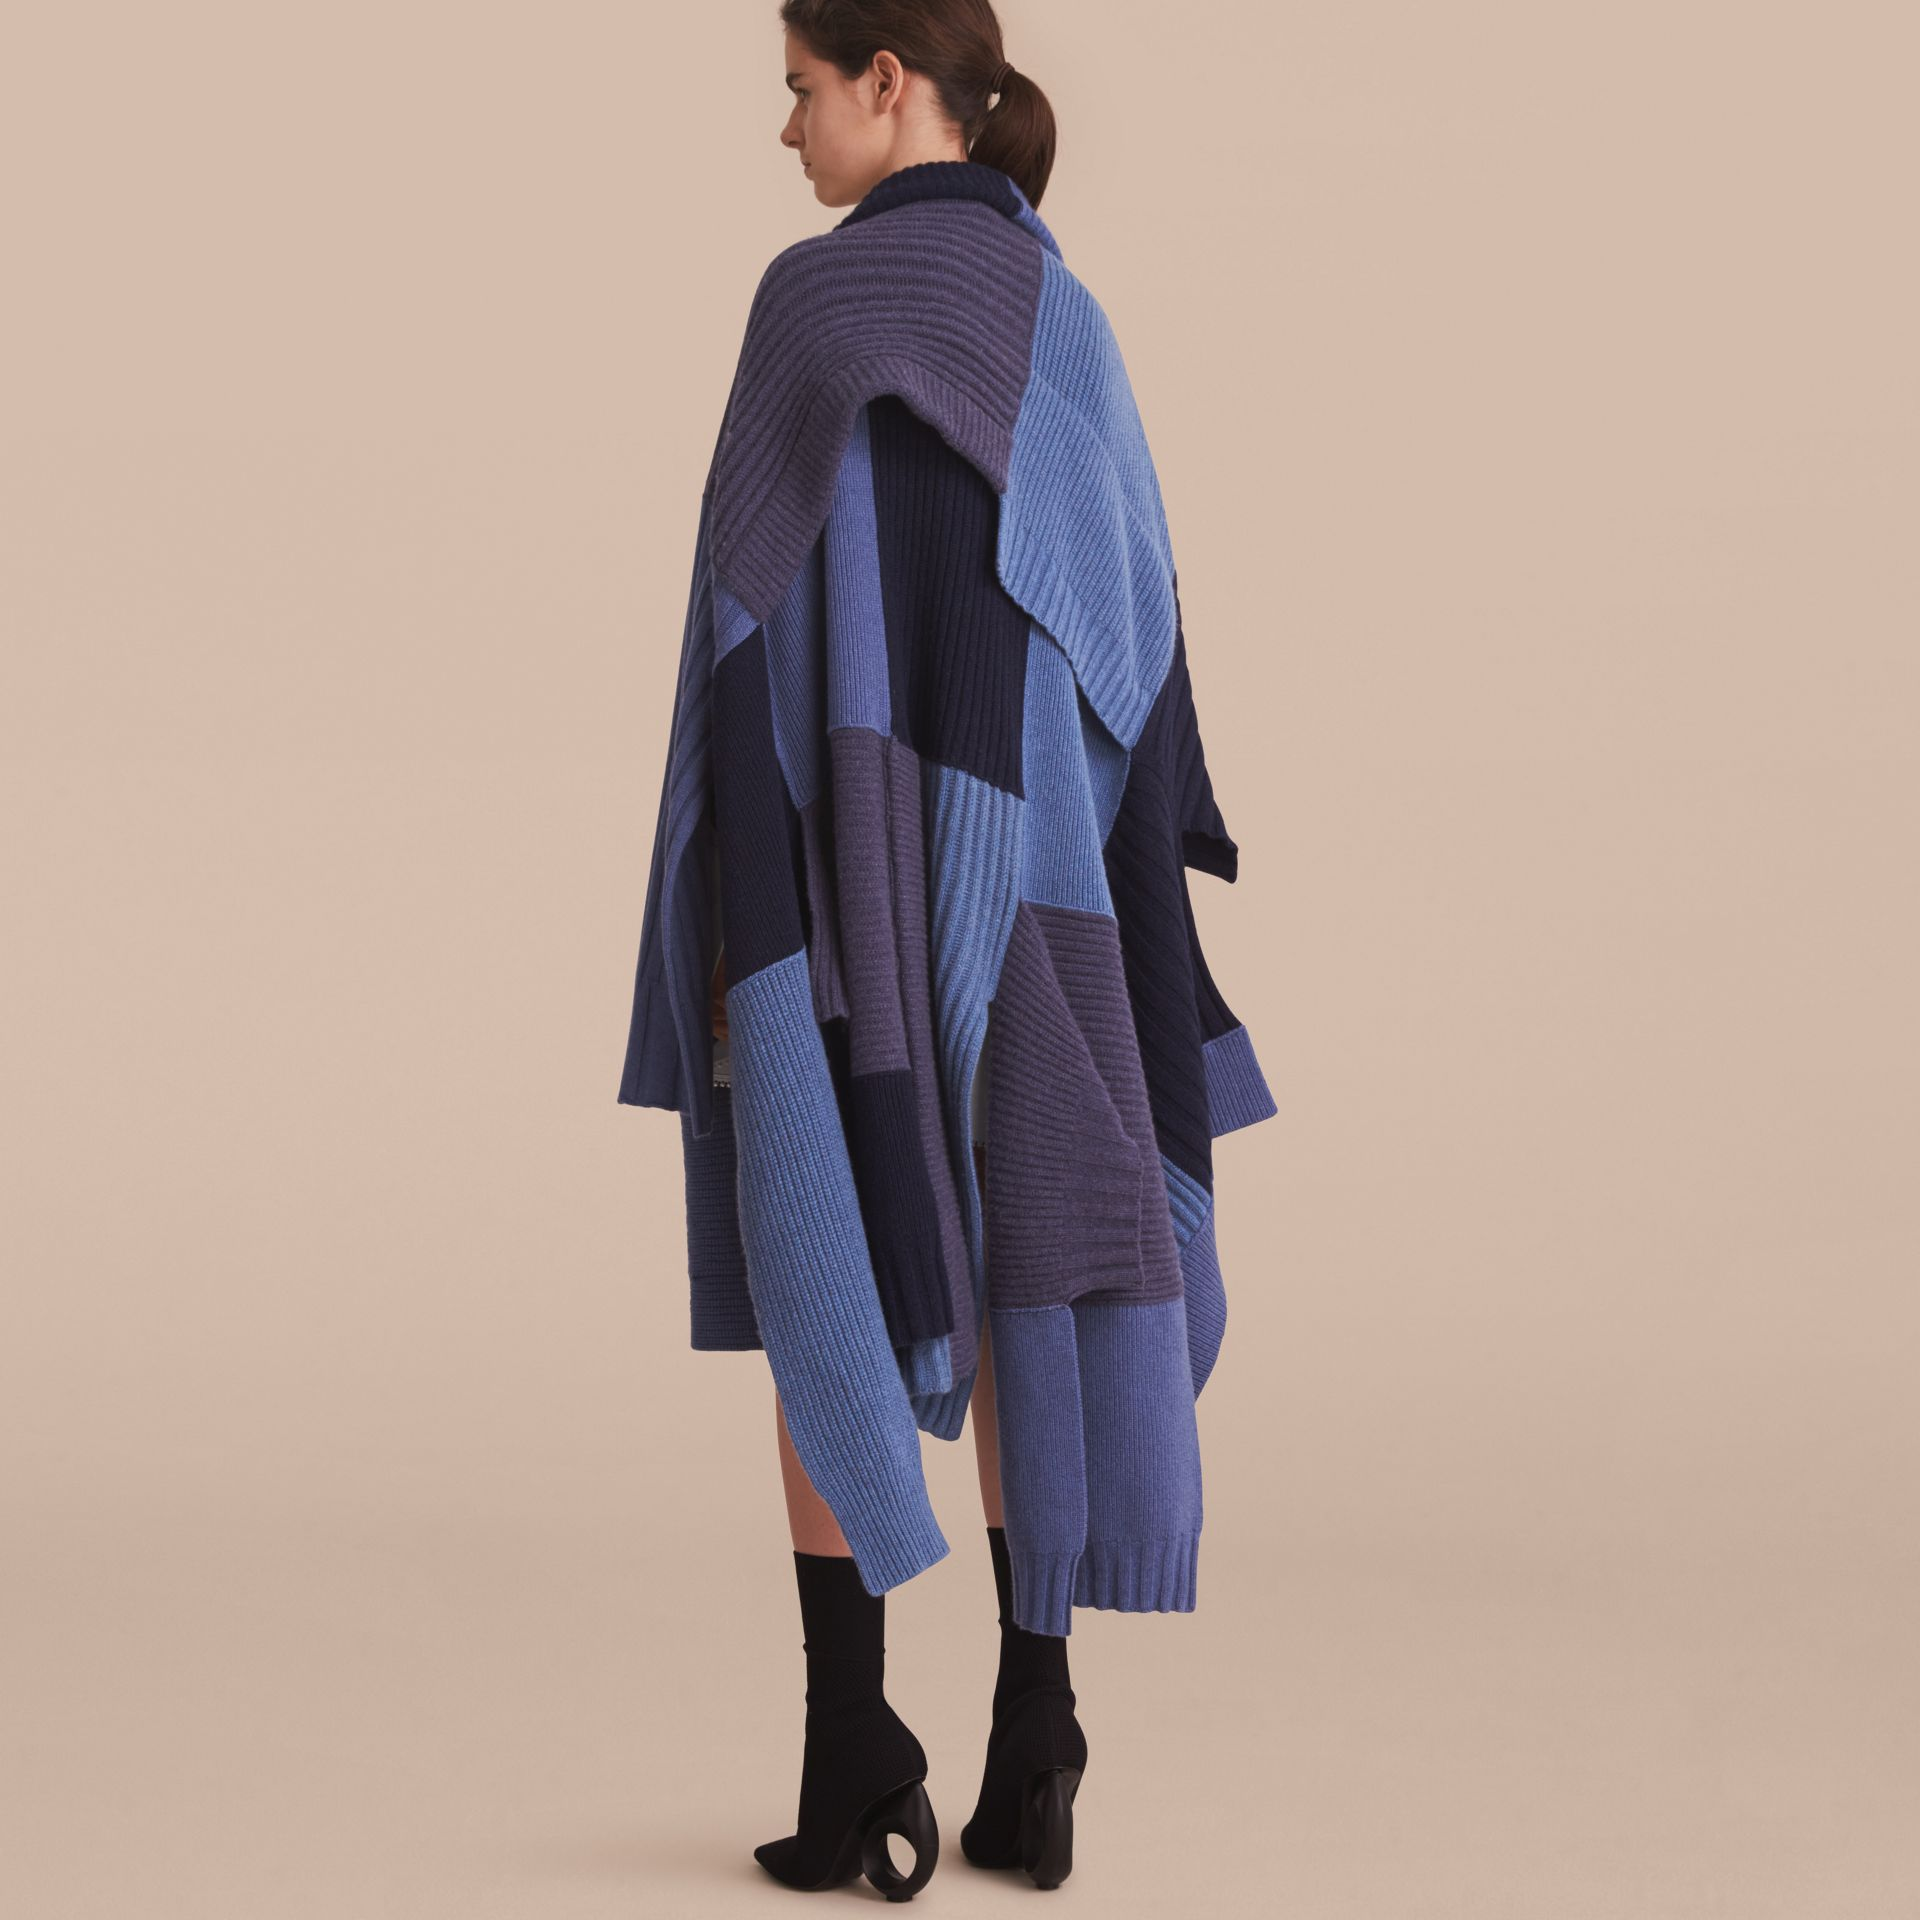 Wool Cashmere Patchwork Poncho in Carbon Blue - Women | Burberry - gallery image 3